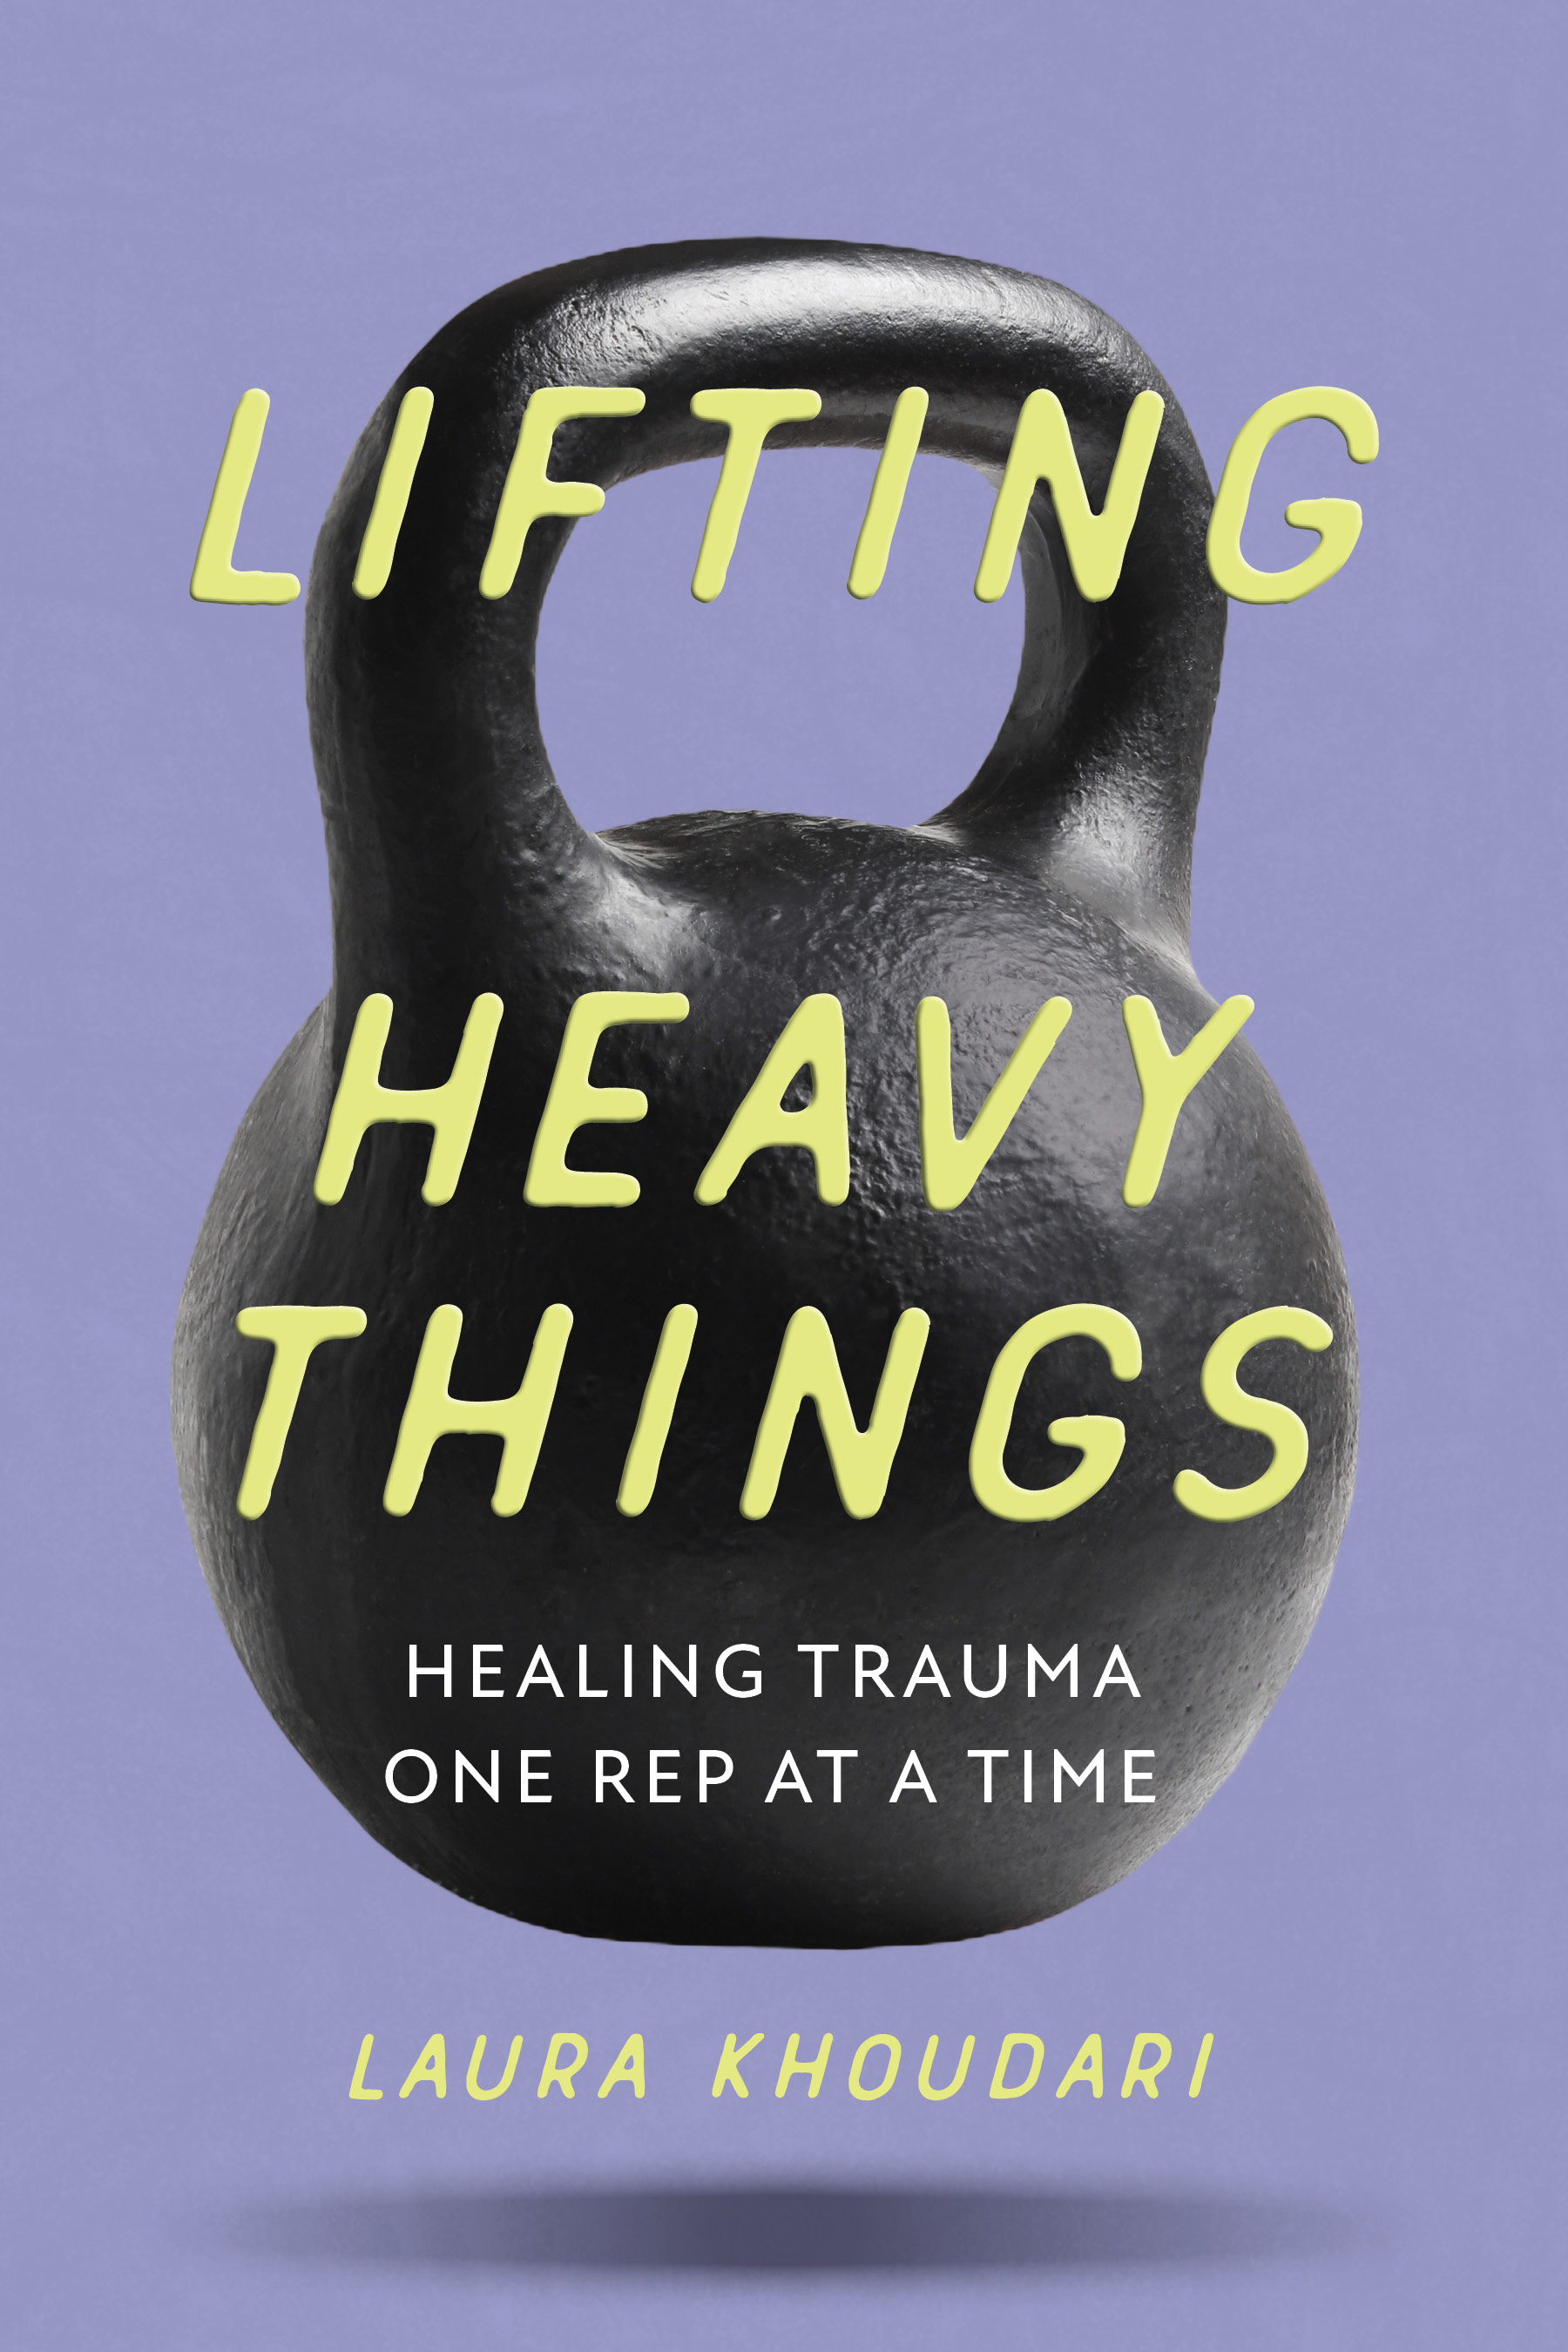 Lifting Heavy Things by Laura Khoudari